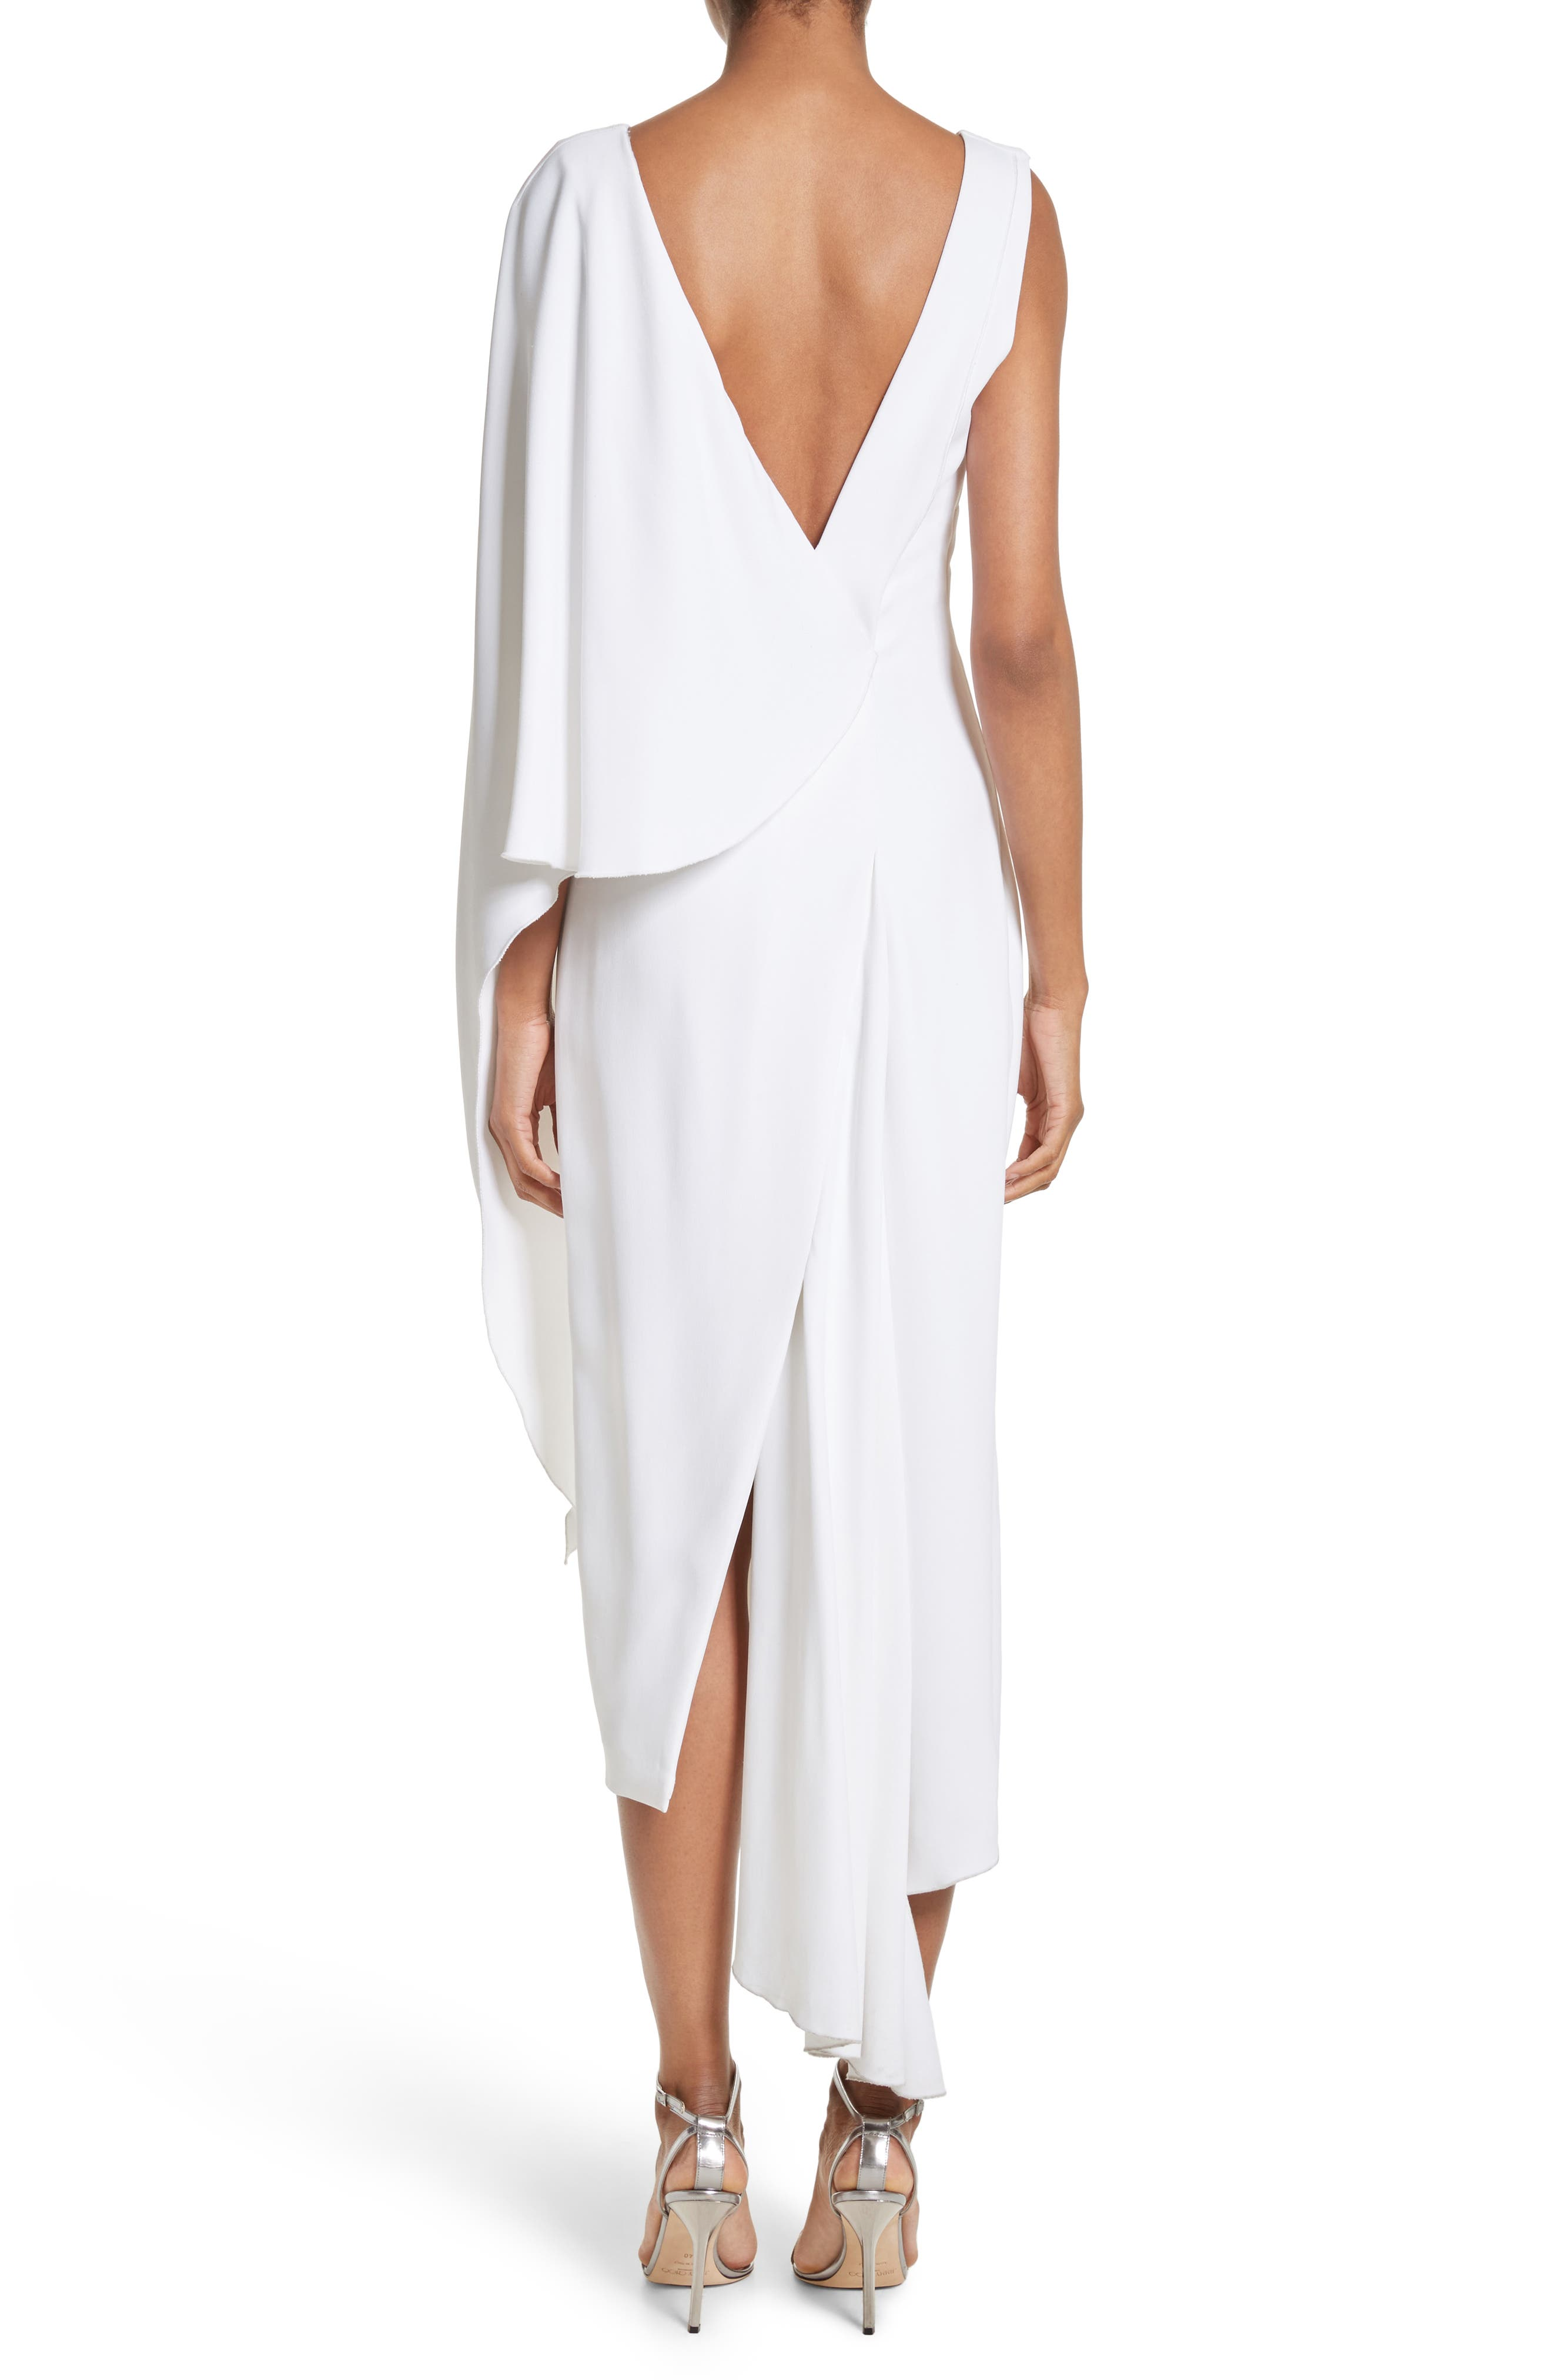 Leta Drape Dress,                             Alternate thumbnail 3, color,                             White